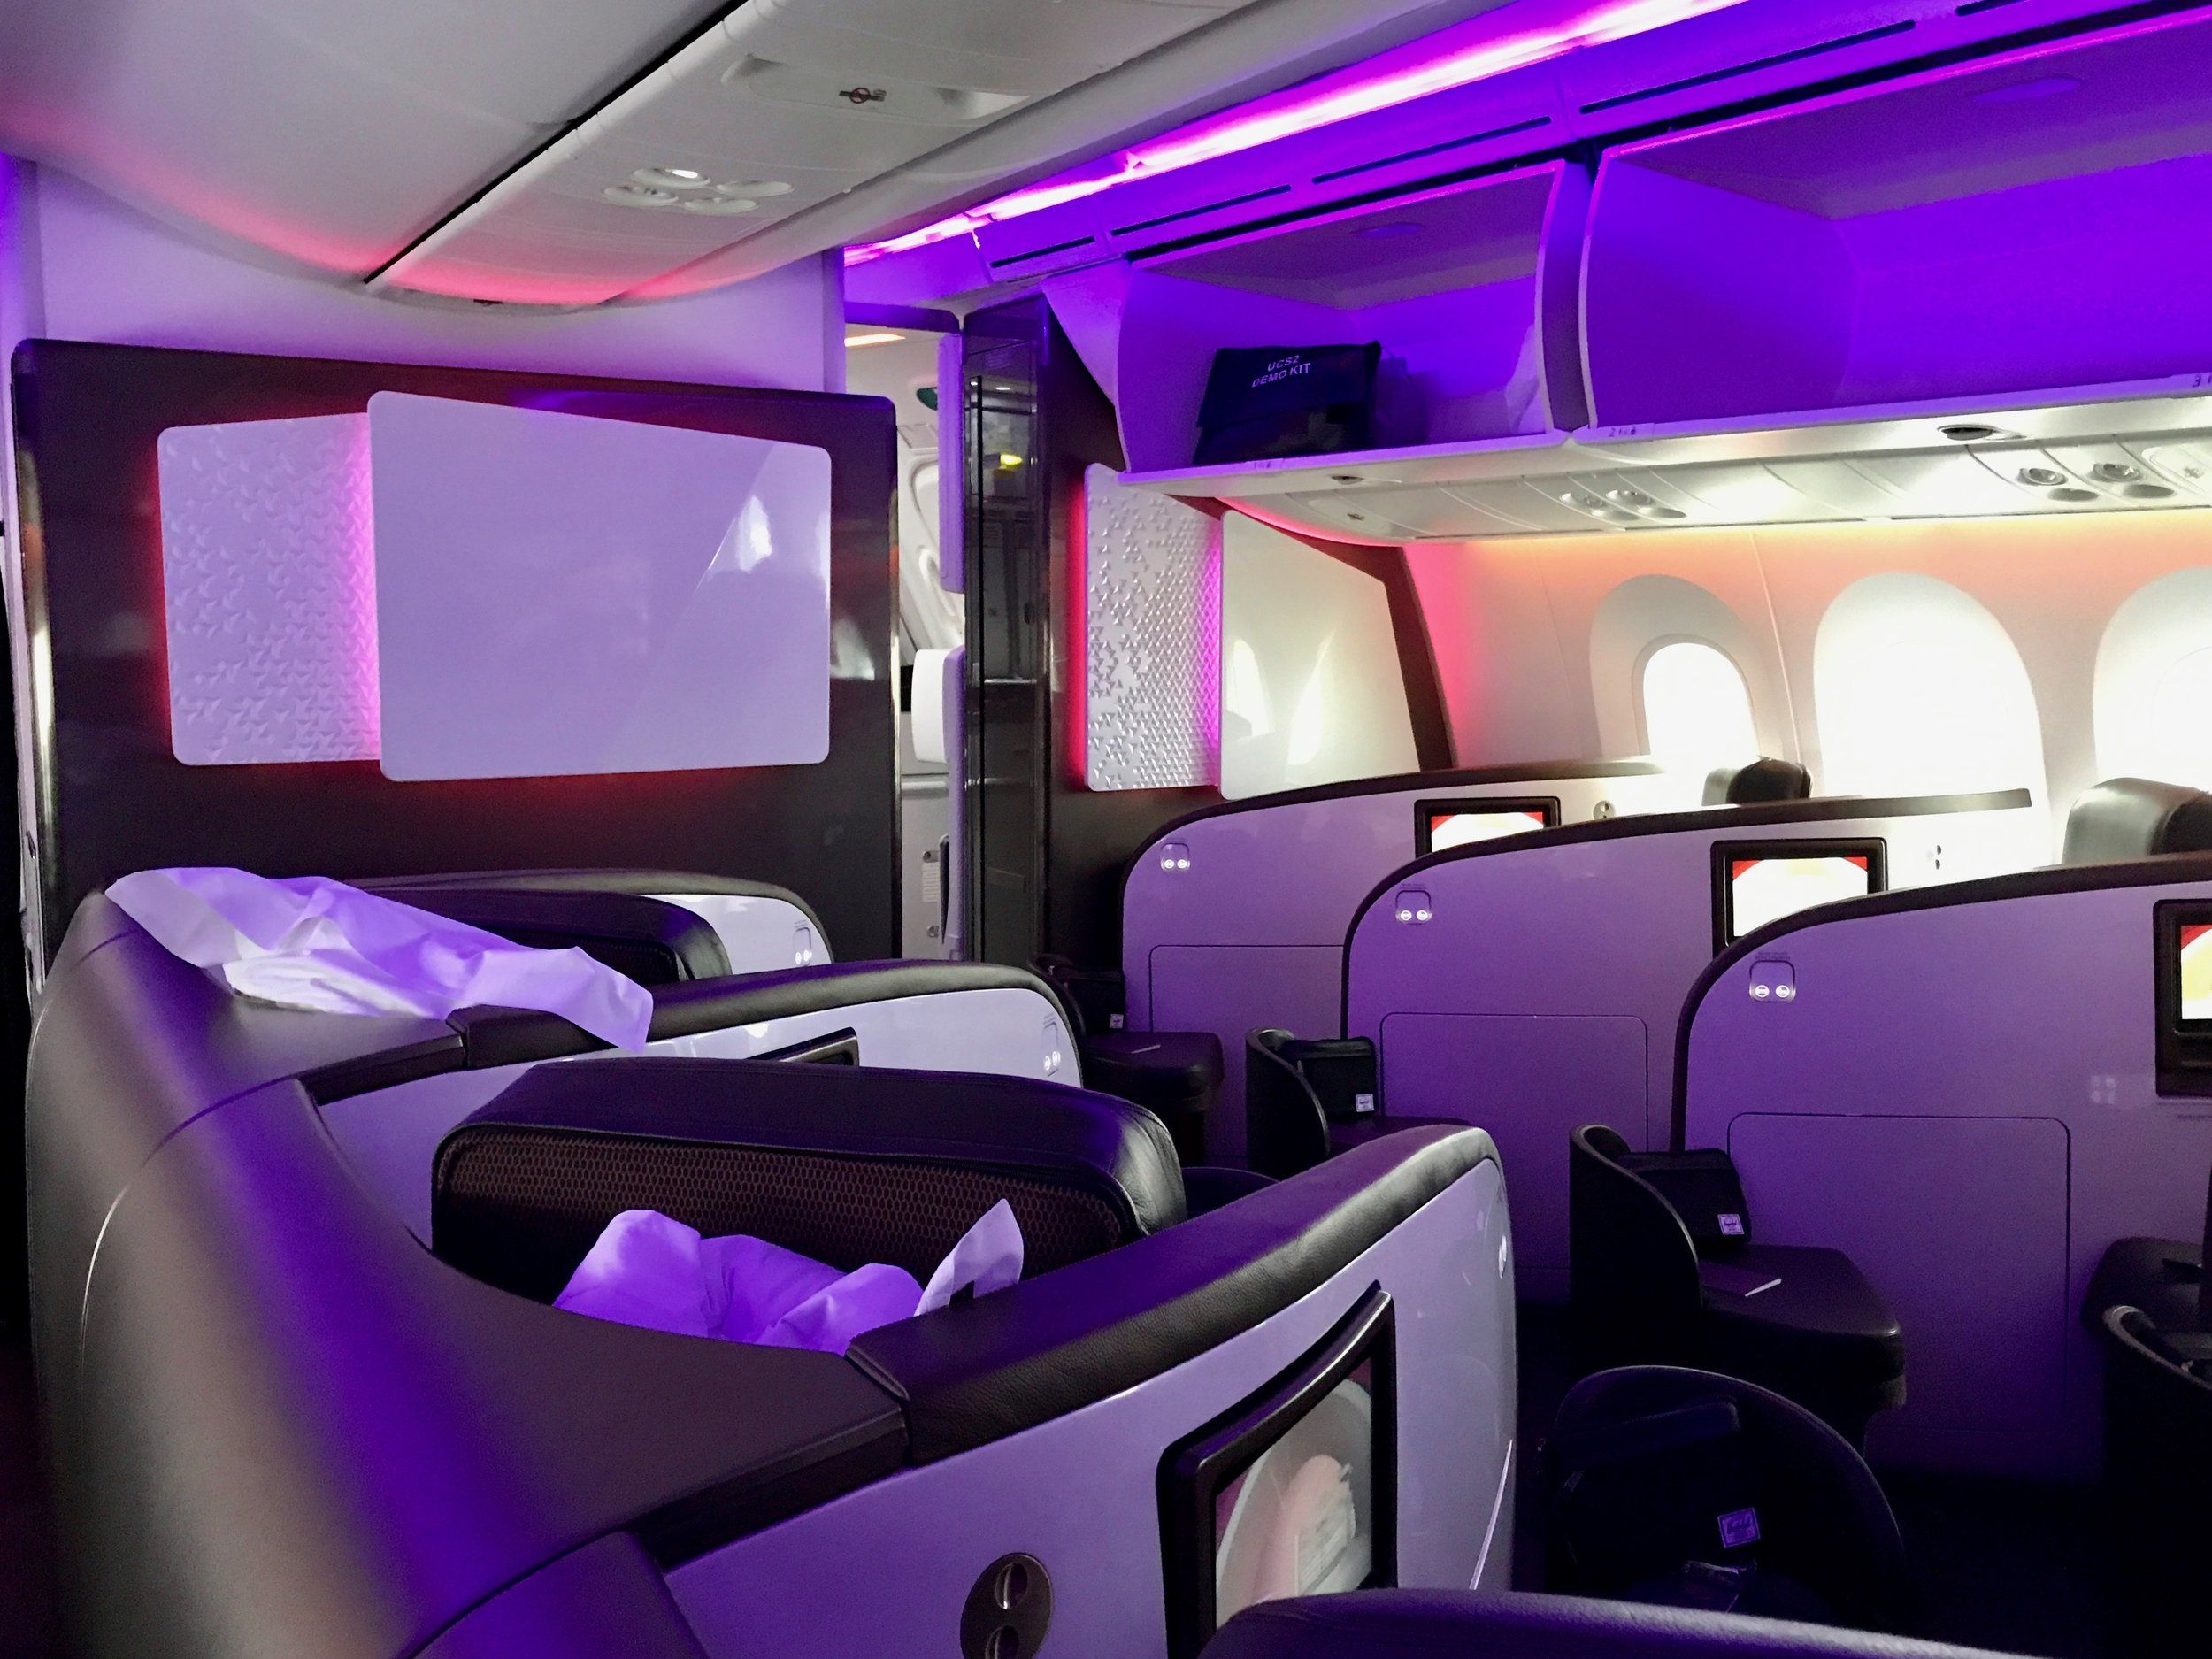 Review Virgin Atlantic 787 Upper Class London to New York